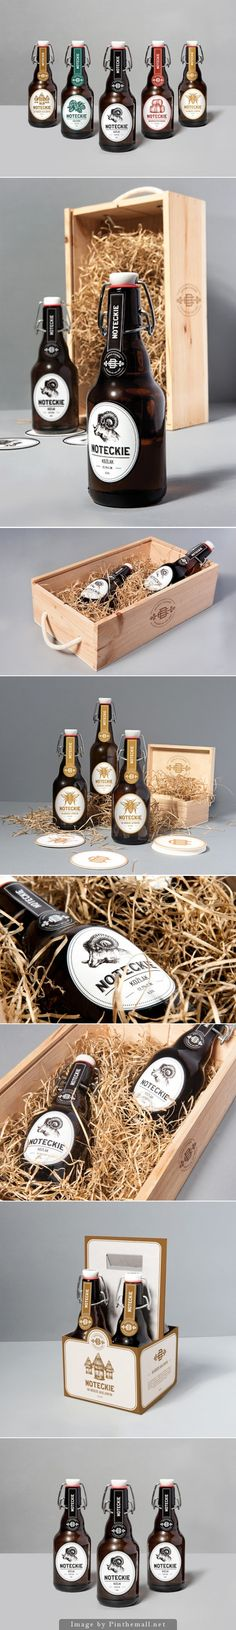 Chose this as I love the aesthetic look of the wooden boxes filled with hay for packaging. Coffee Packaging, Beverage Packaging, Bottle Packaging, Food Packaging, Brand Packaging, Branding, Beer Label Design, Gifts For Beer Lovers, Beer Brands